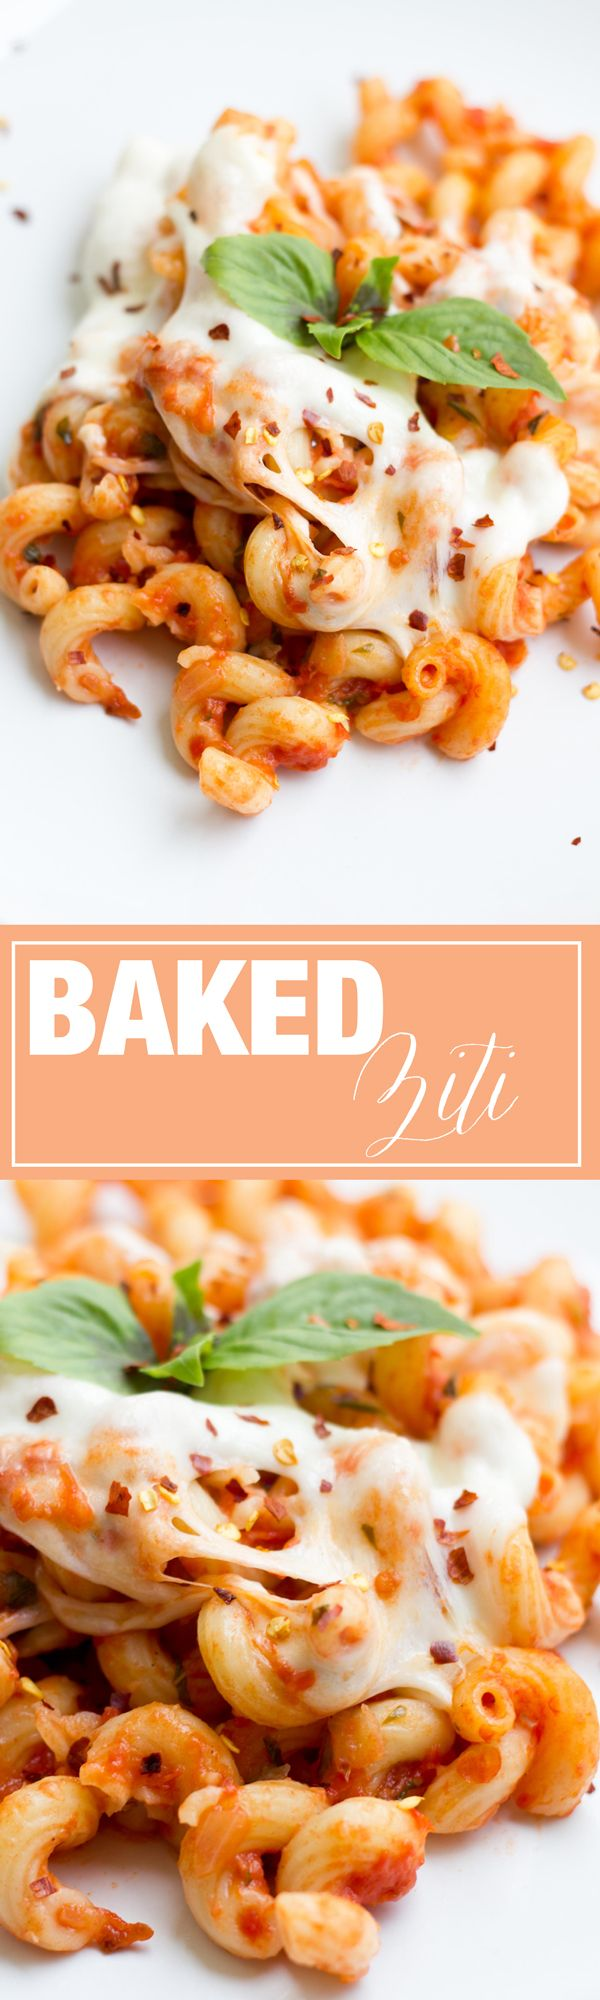 The best BAKED ZITI recipe out there! Finally a great way to utilize your leftover pasta!